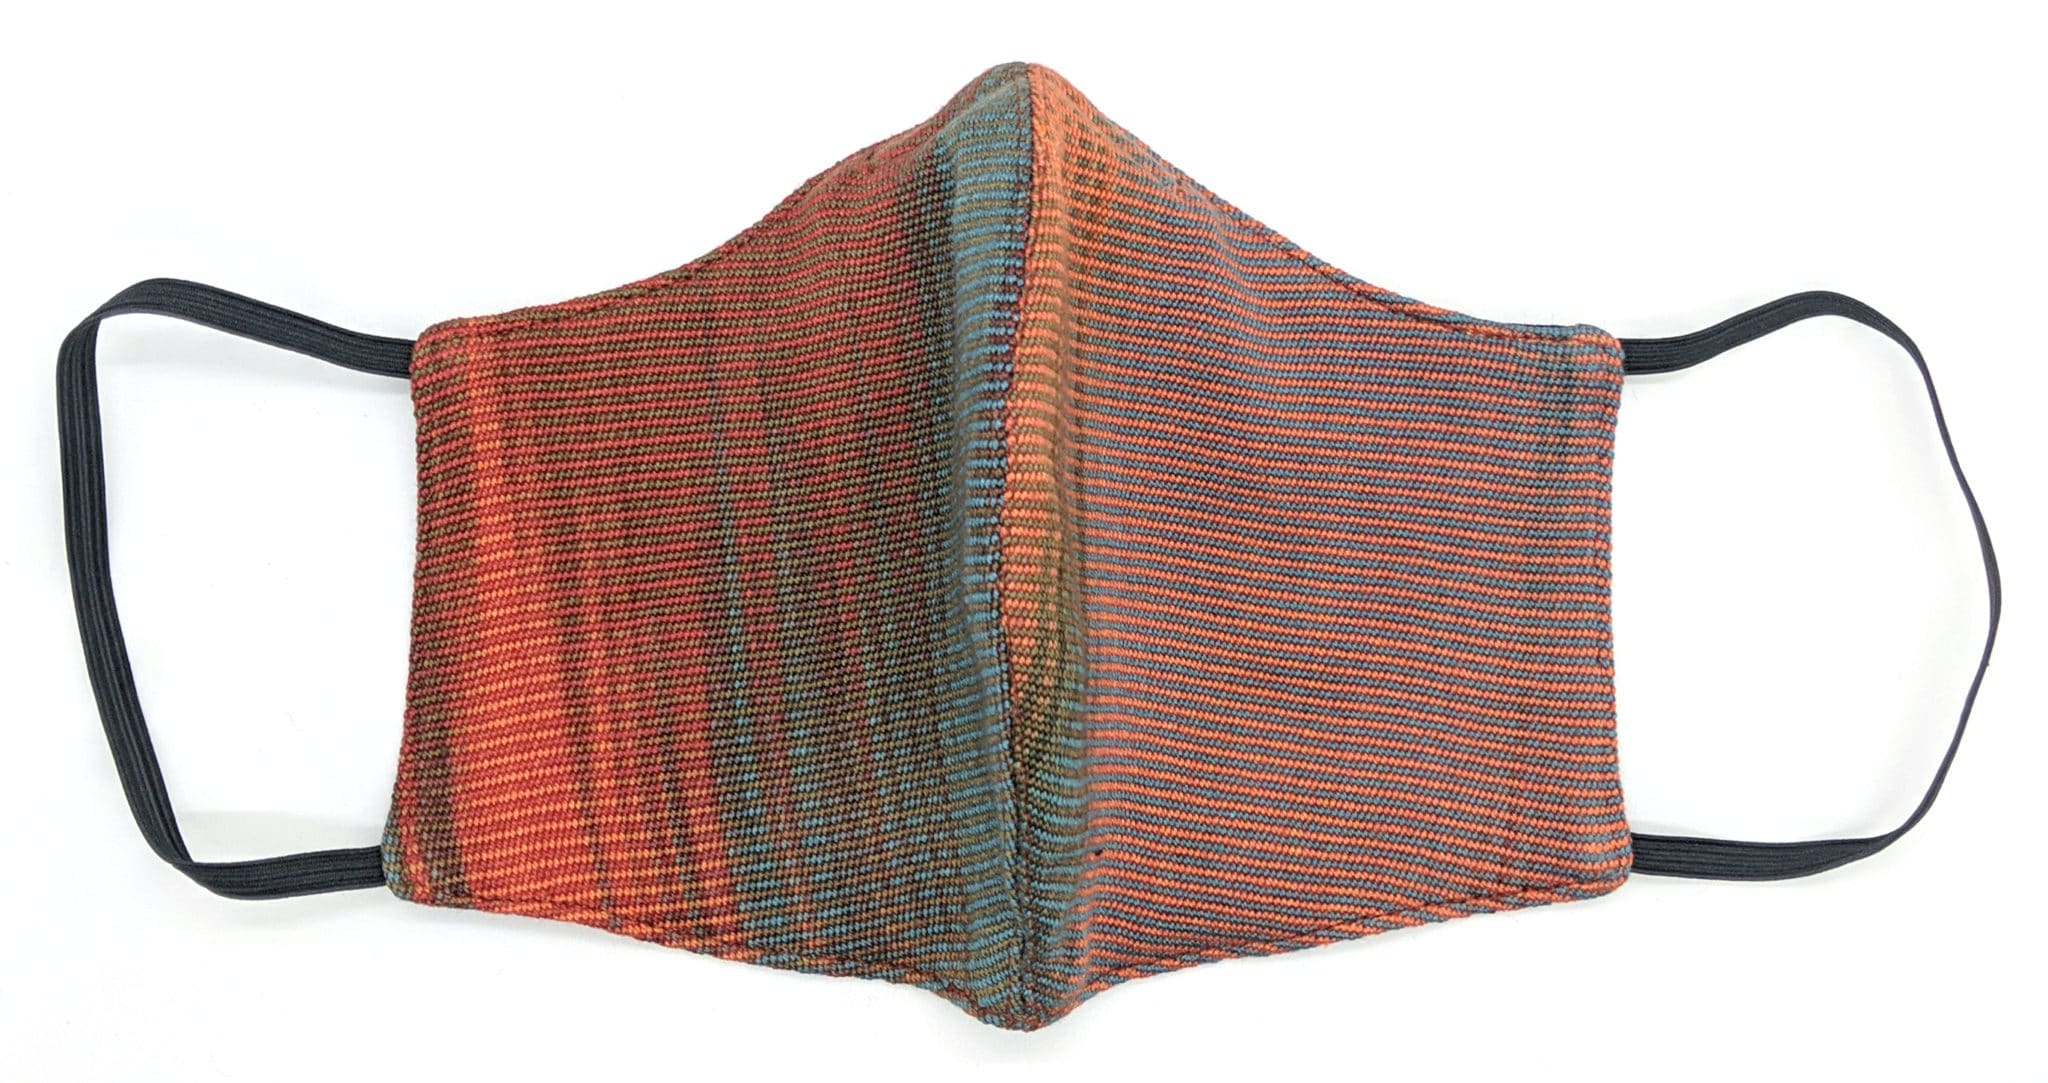 Handwoven Lightweight Bamboo Face Mask with Metal at Bridge of Nose - Turquoise, Coral